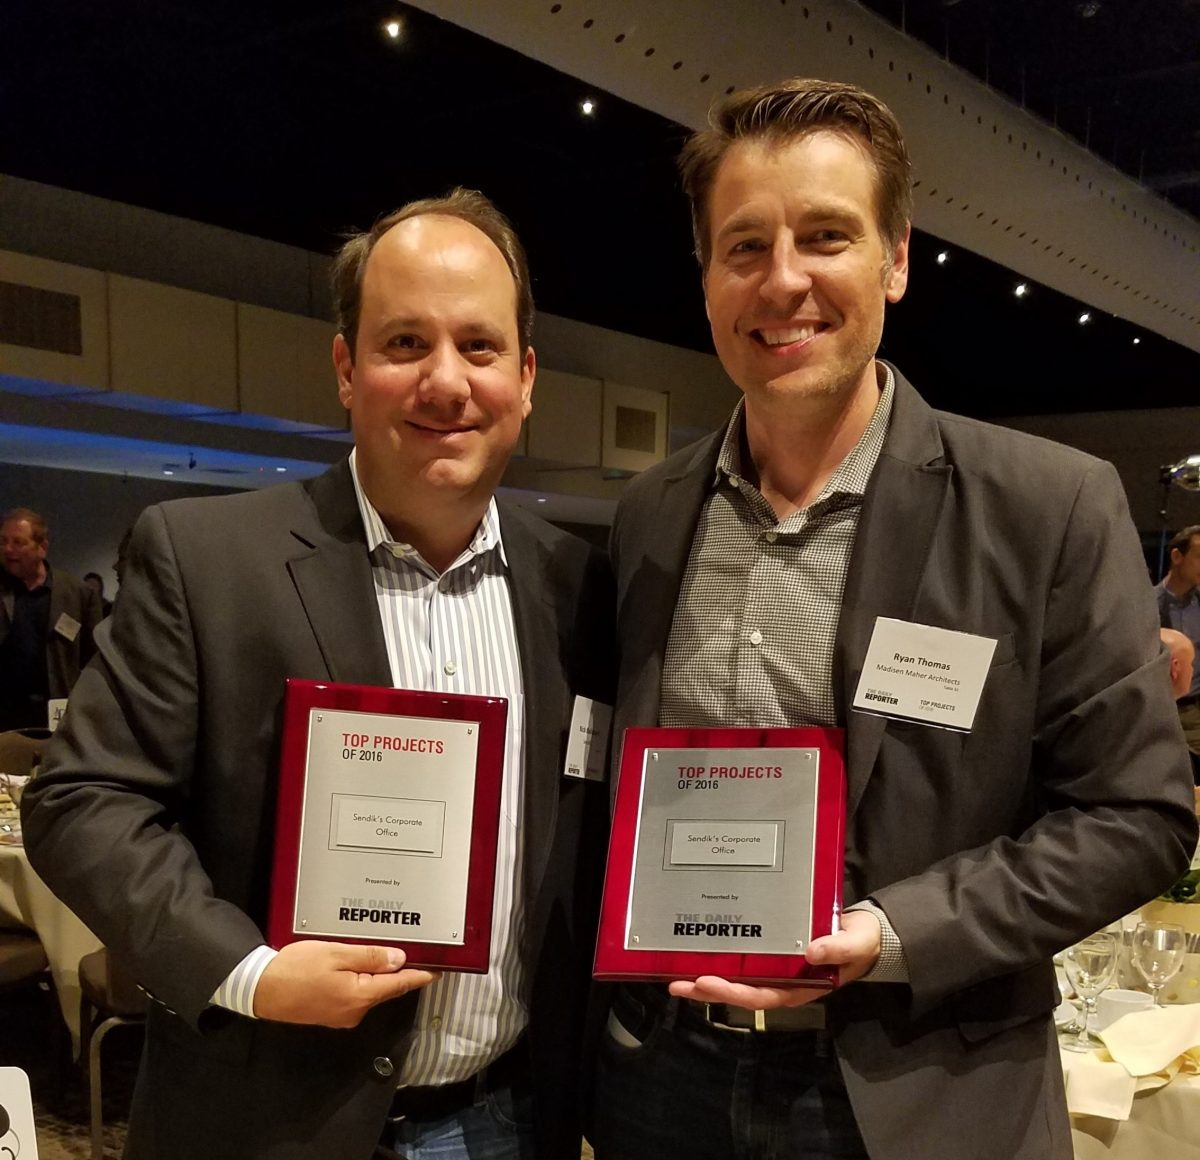 MMA announces Top Projects Award for Sendik's Food Market – Corporate Office